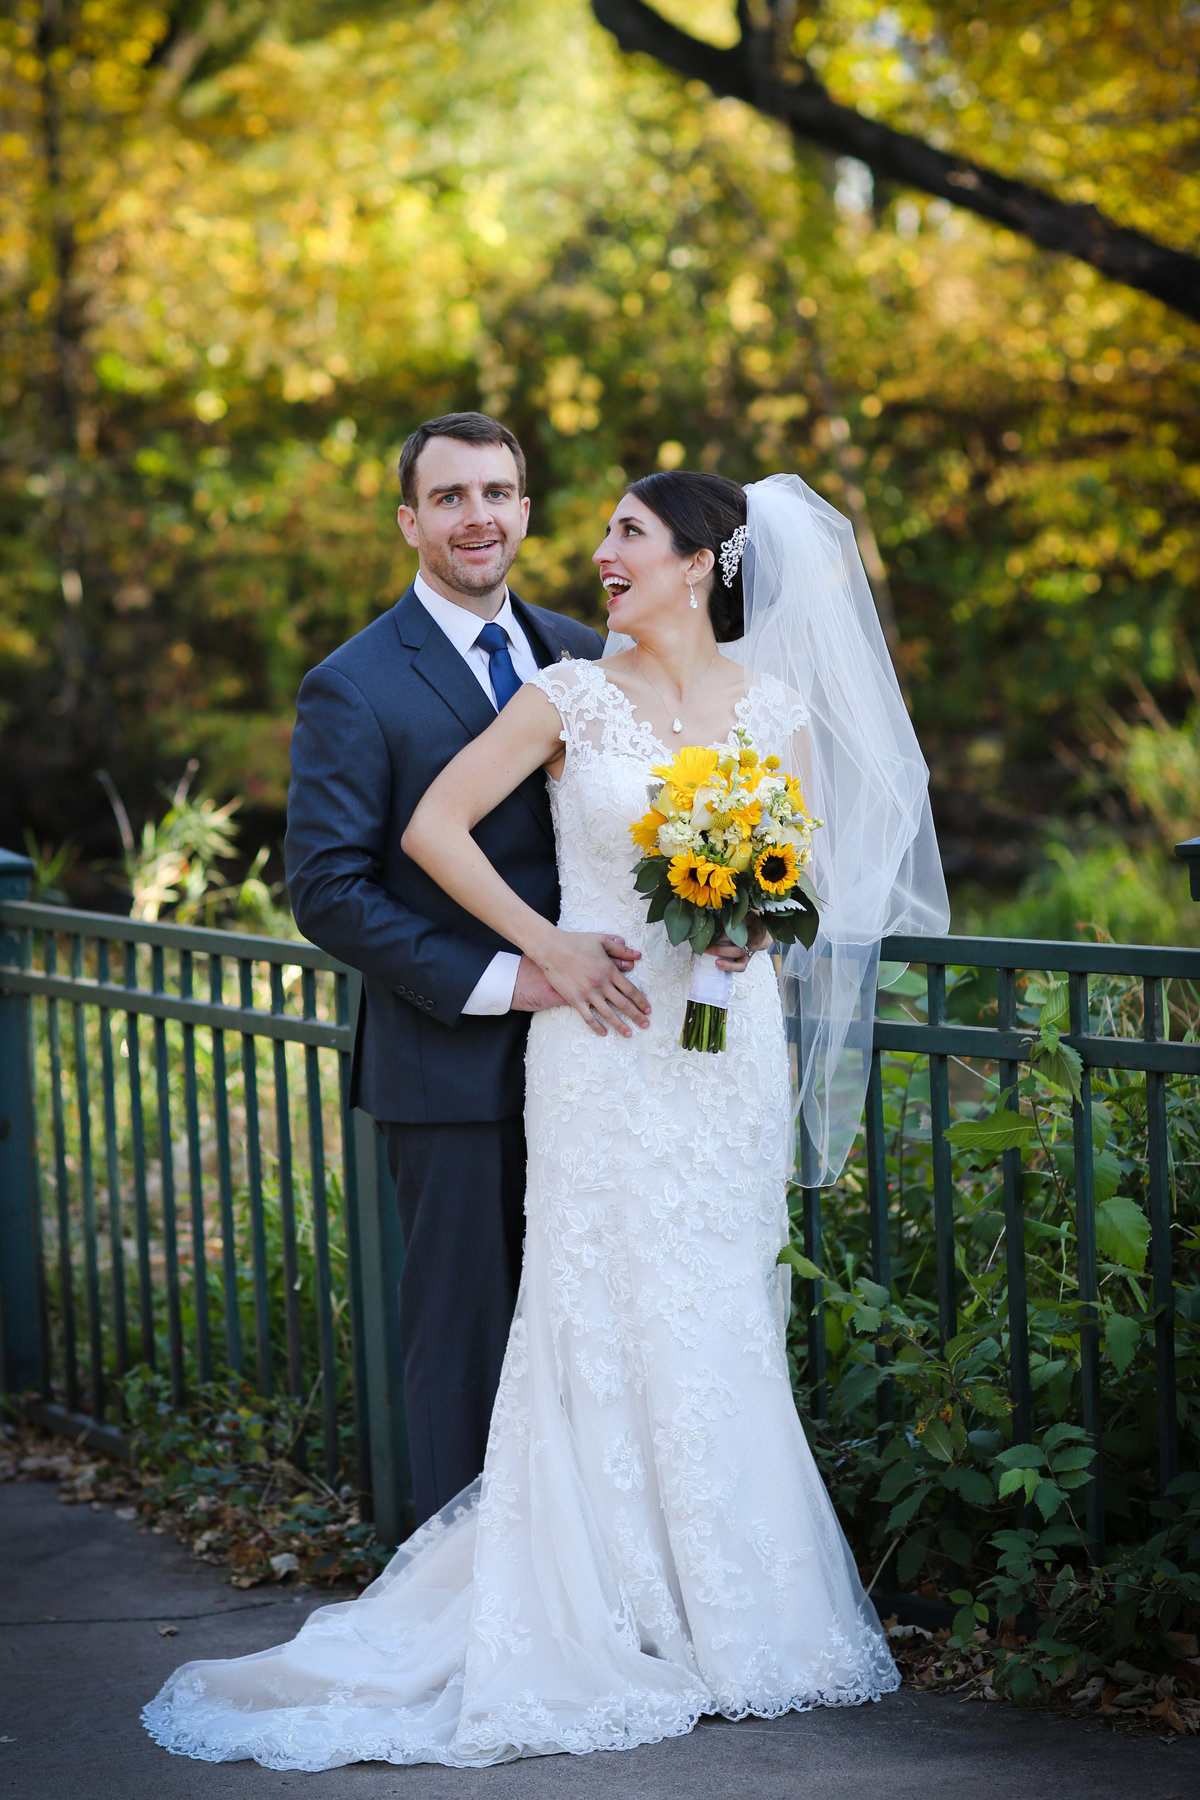 Minnehaha Falls - Fall wedding pictures of the bride and groom